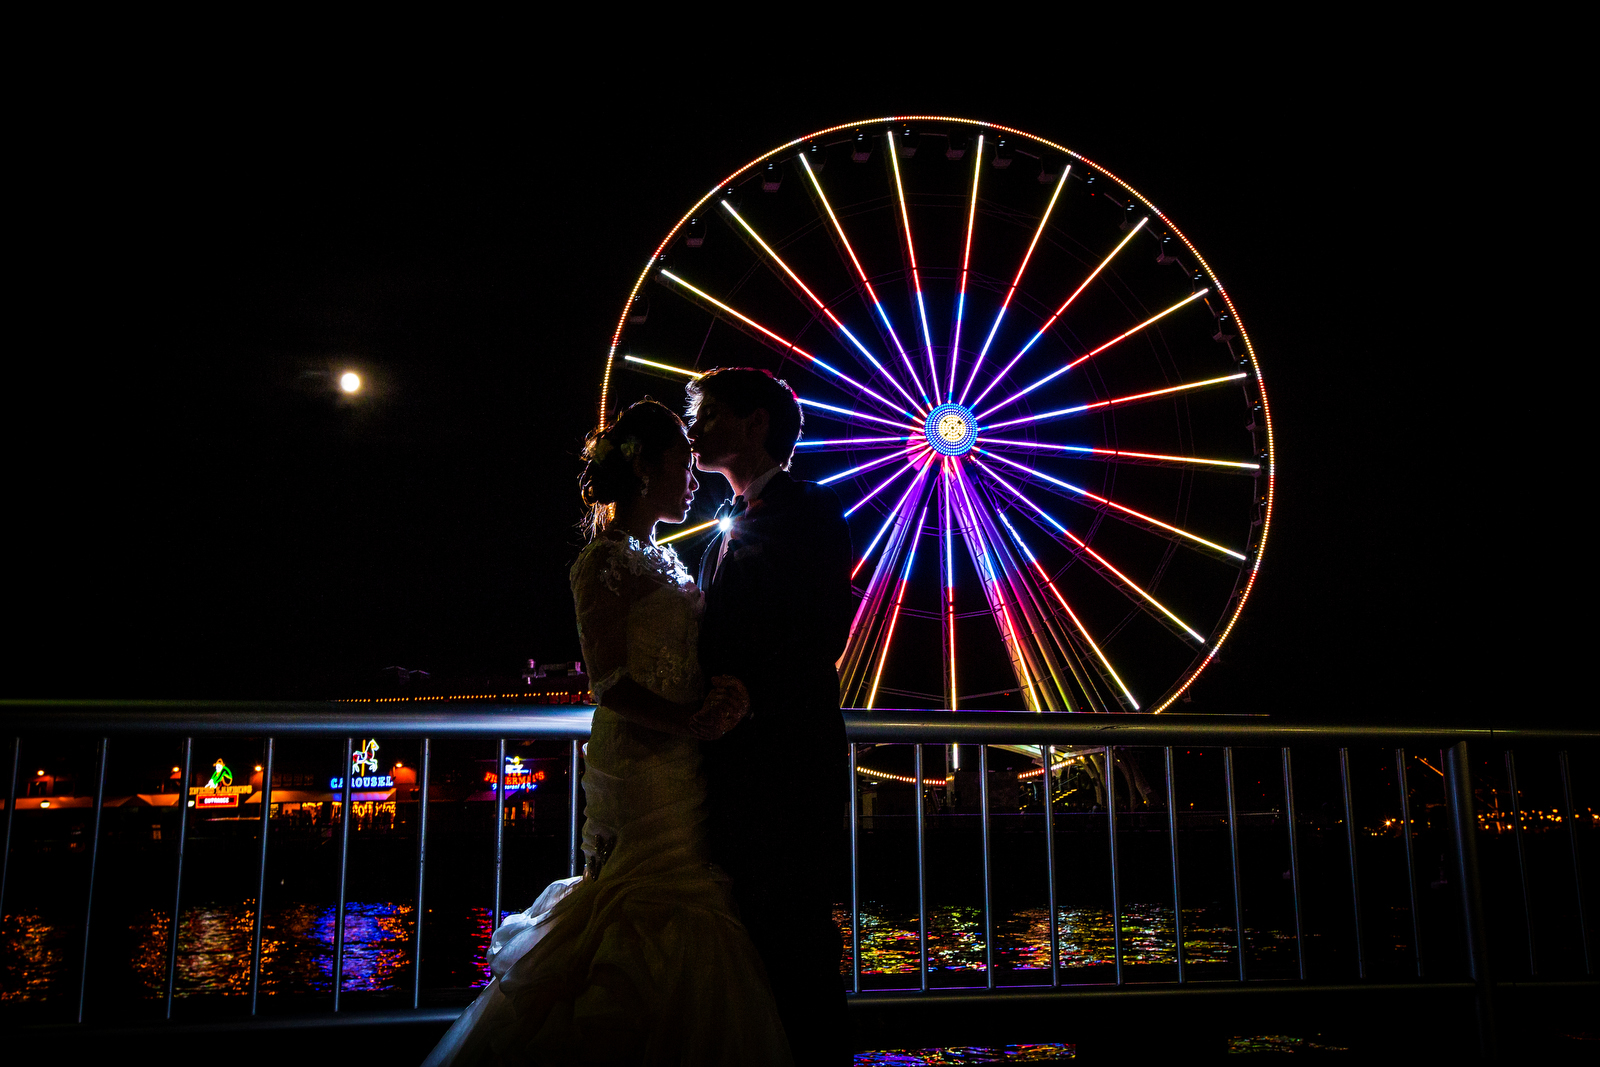 The bride & groom kiss in front of the Great Seattle Wheel on the Seattle waterfront during their wedding at the Seattle Aquarium. (Wedding Photography by Scott Eklund - Red Box Pictures)